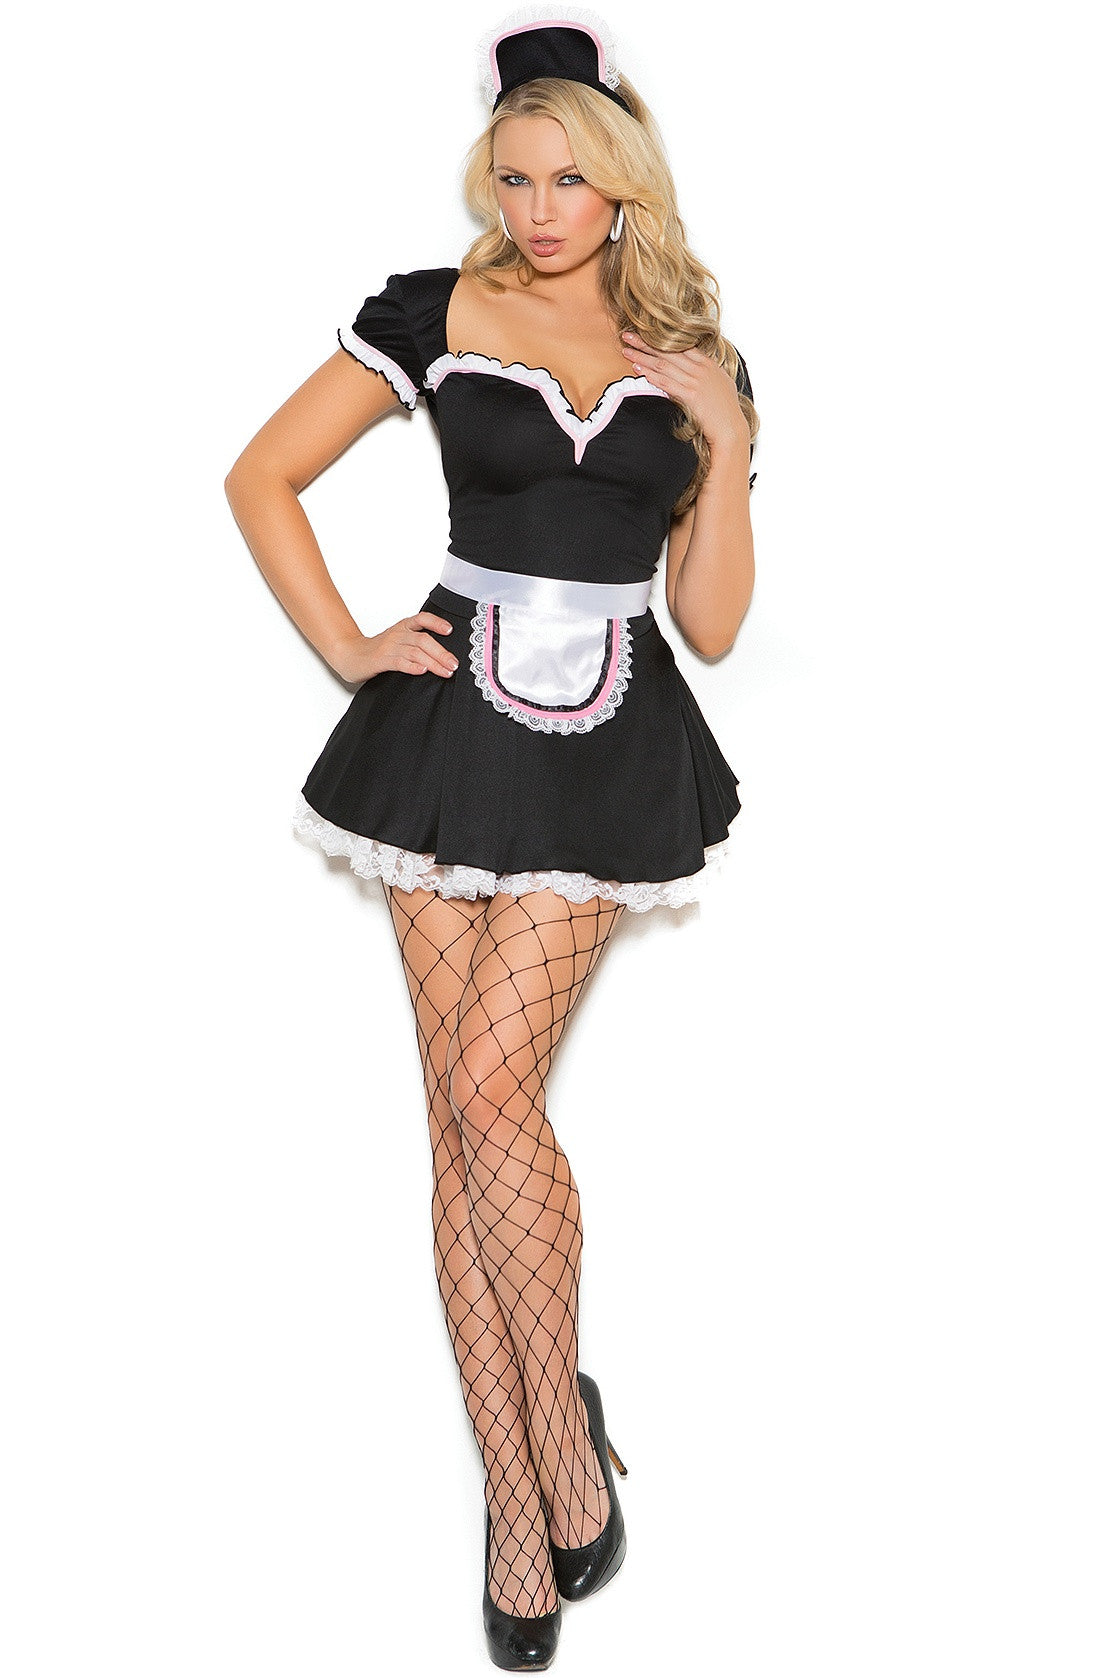 EM-9132 Maid to please - costume - Sexylingerieland  - 1